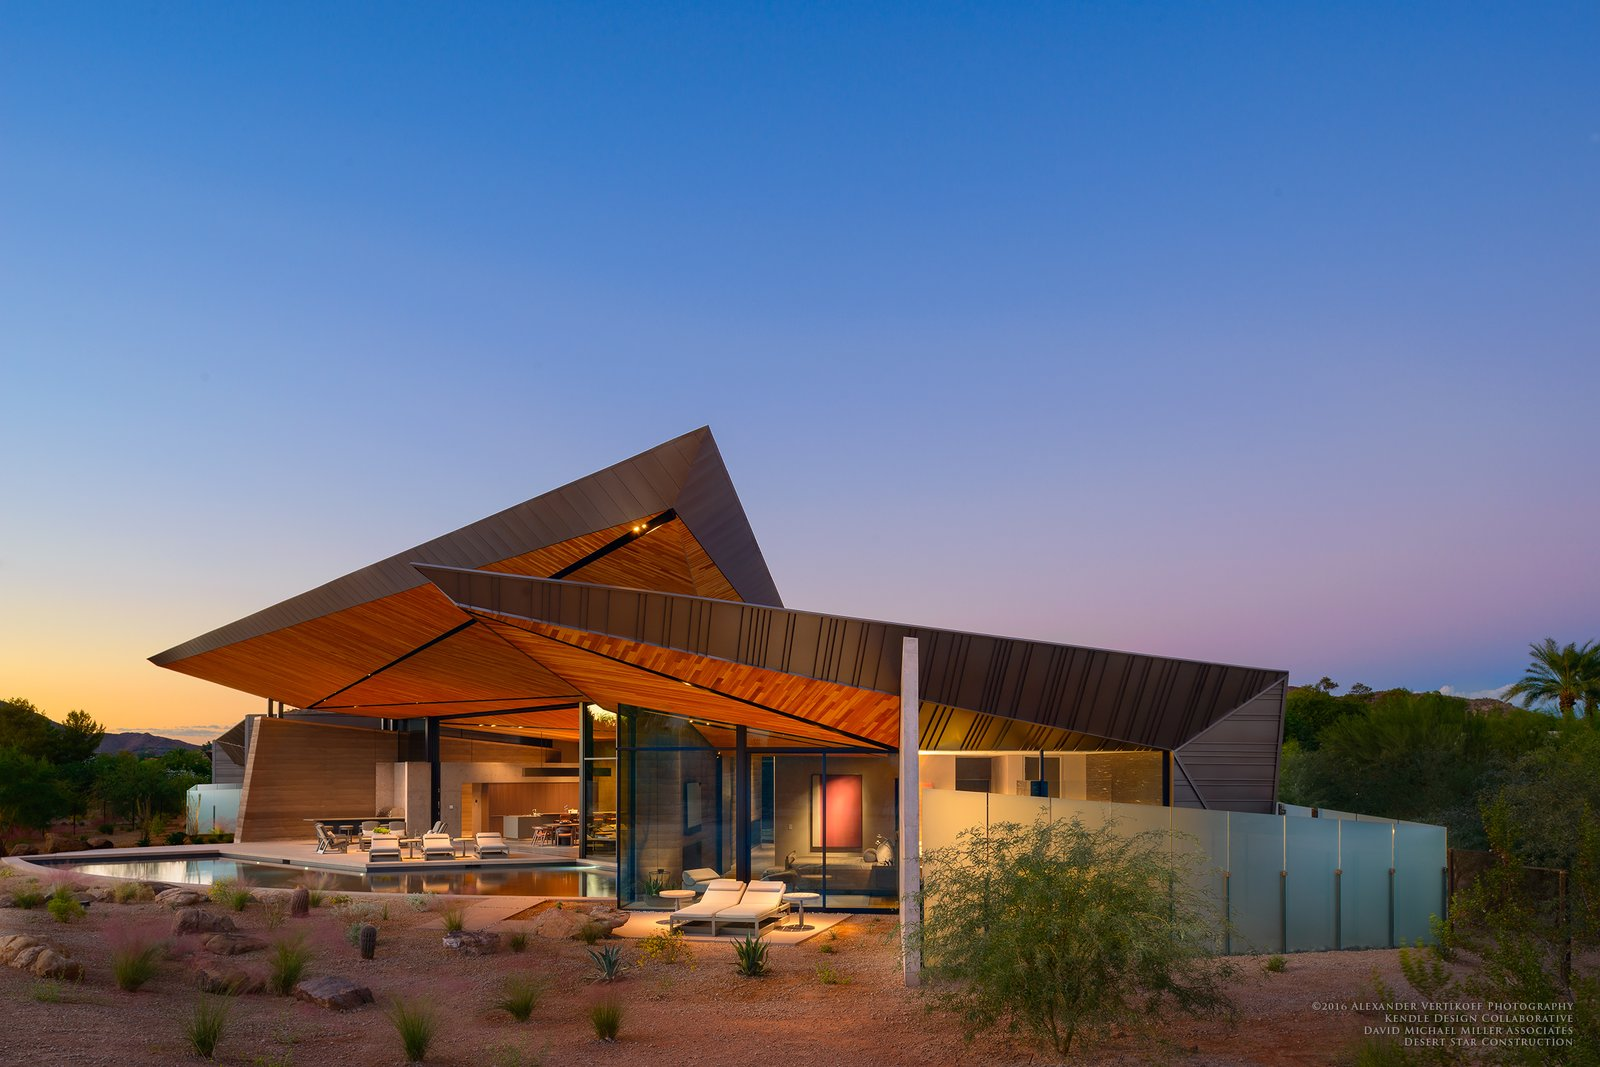 Exterior, House Building Type, Metal Siding Material, Metal Roof Material, Concrete Siding Material, and Wood Siding Material  Dancing Light by Brent Kendle / Kendle Design Collaborative